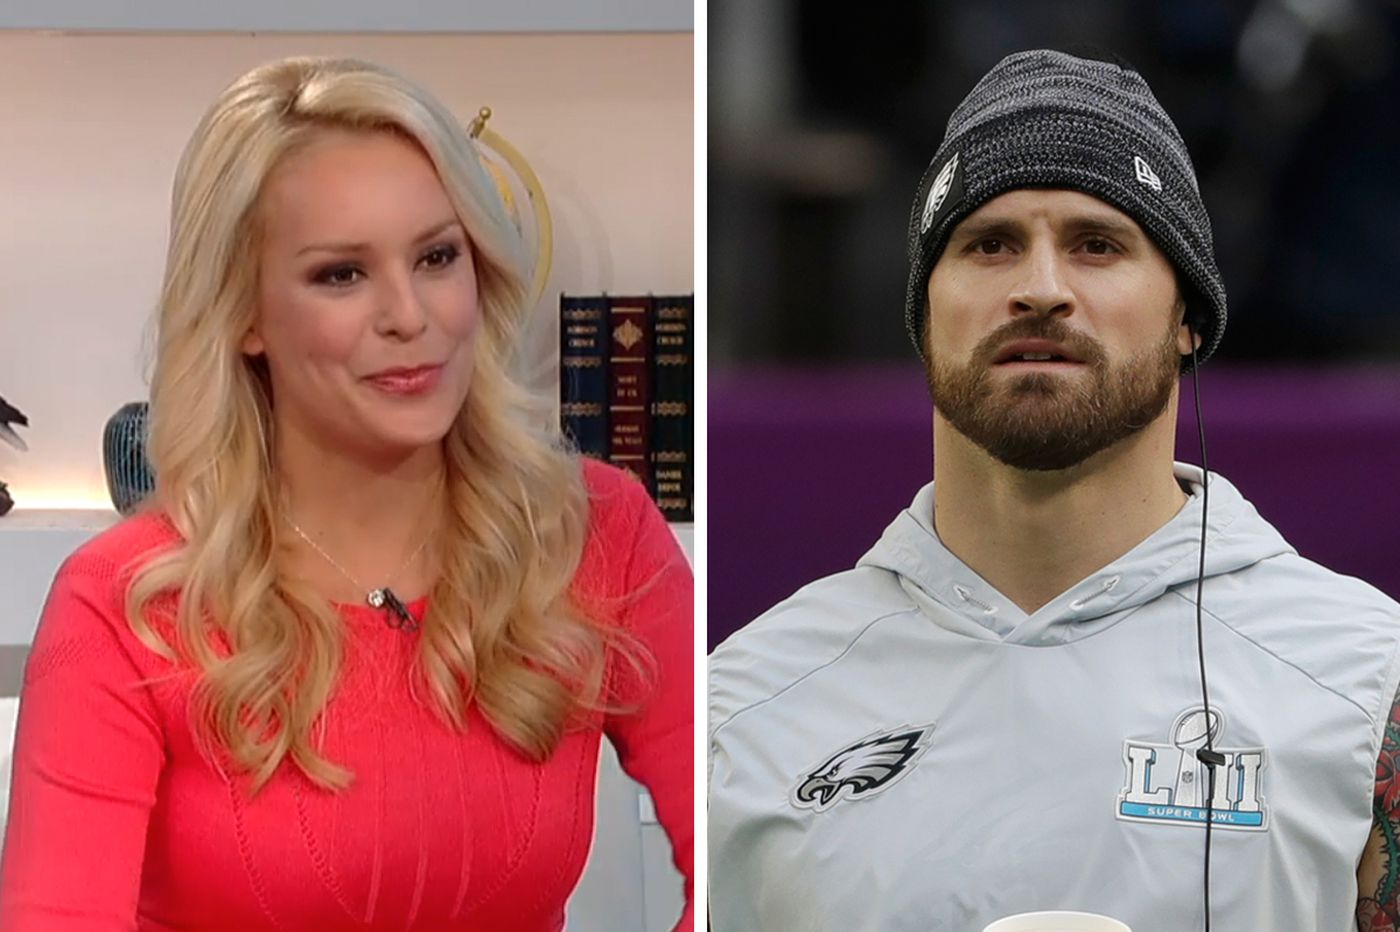 Ex-ESPN reporter Britt McHenry thrilled about Fox News success, but regrets calling out Eagles defender Chris Long